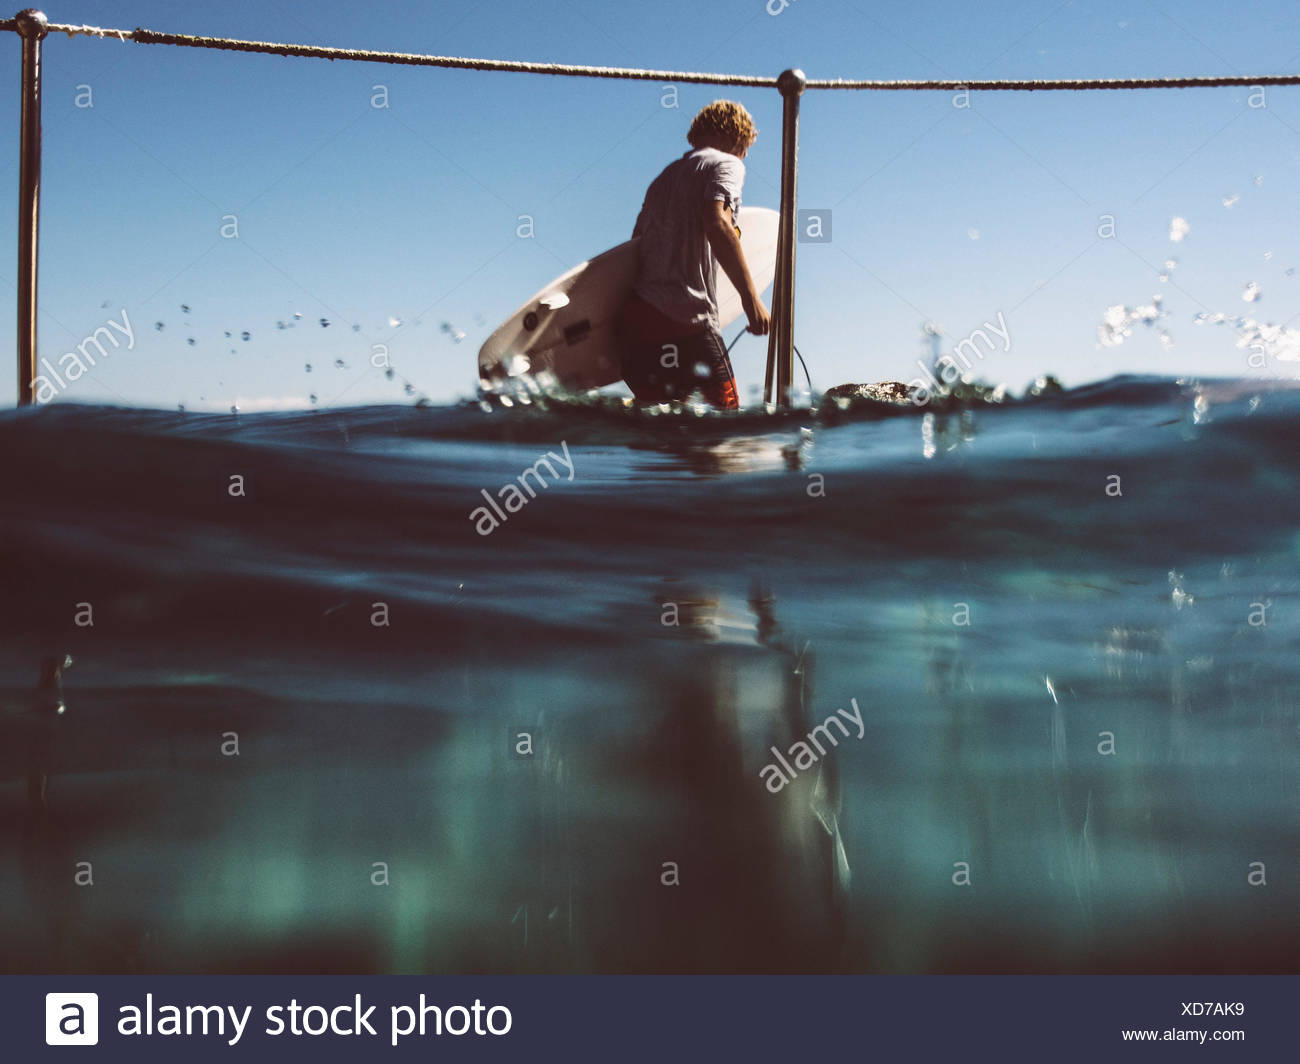 Man With Surfboard - Stock Image